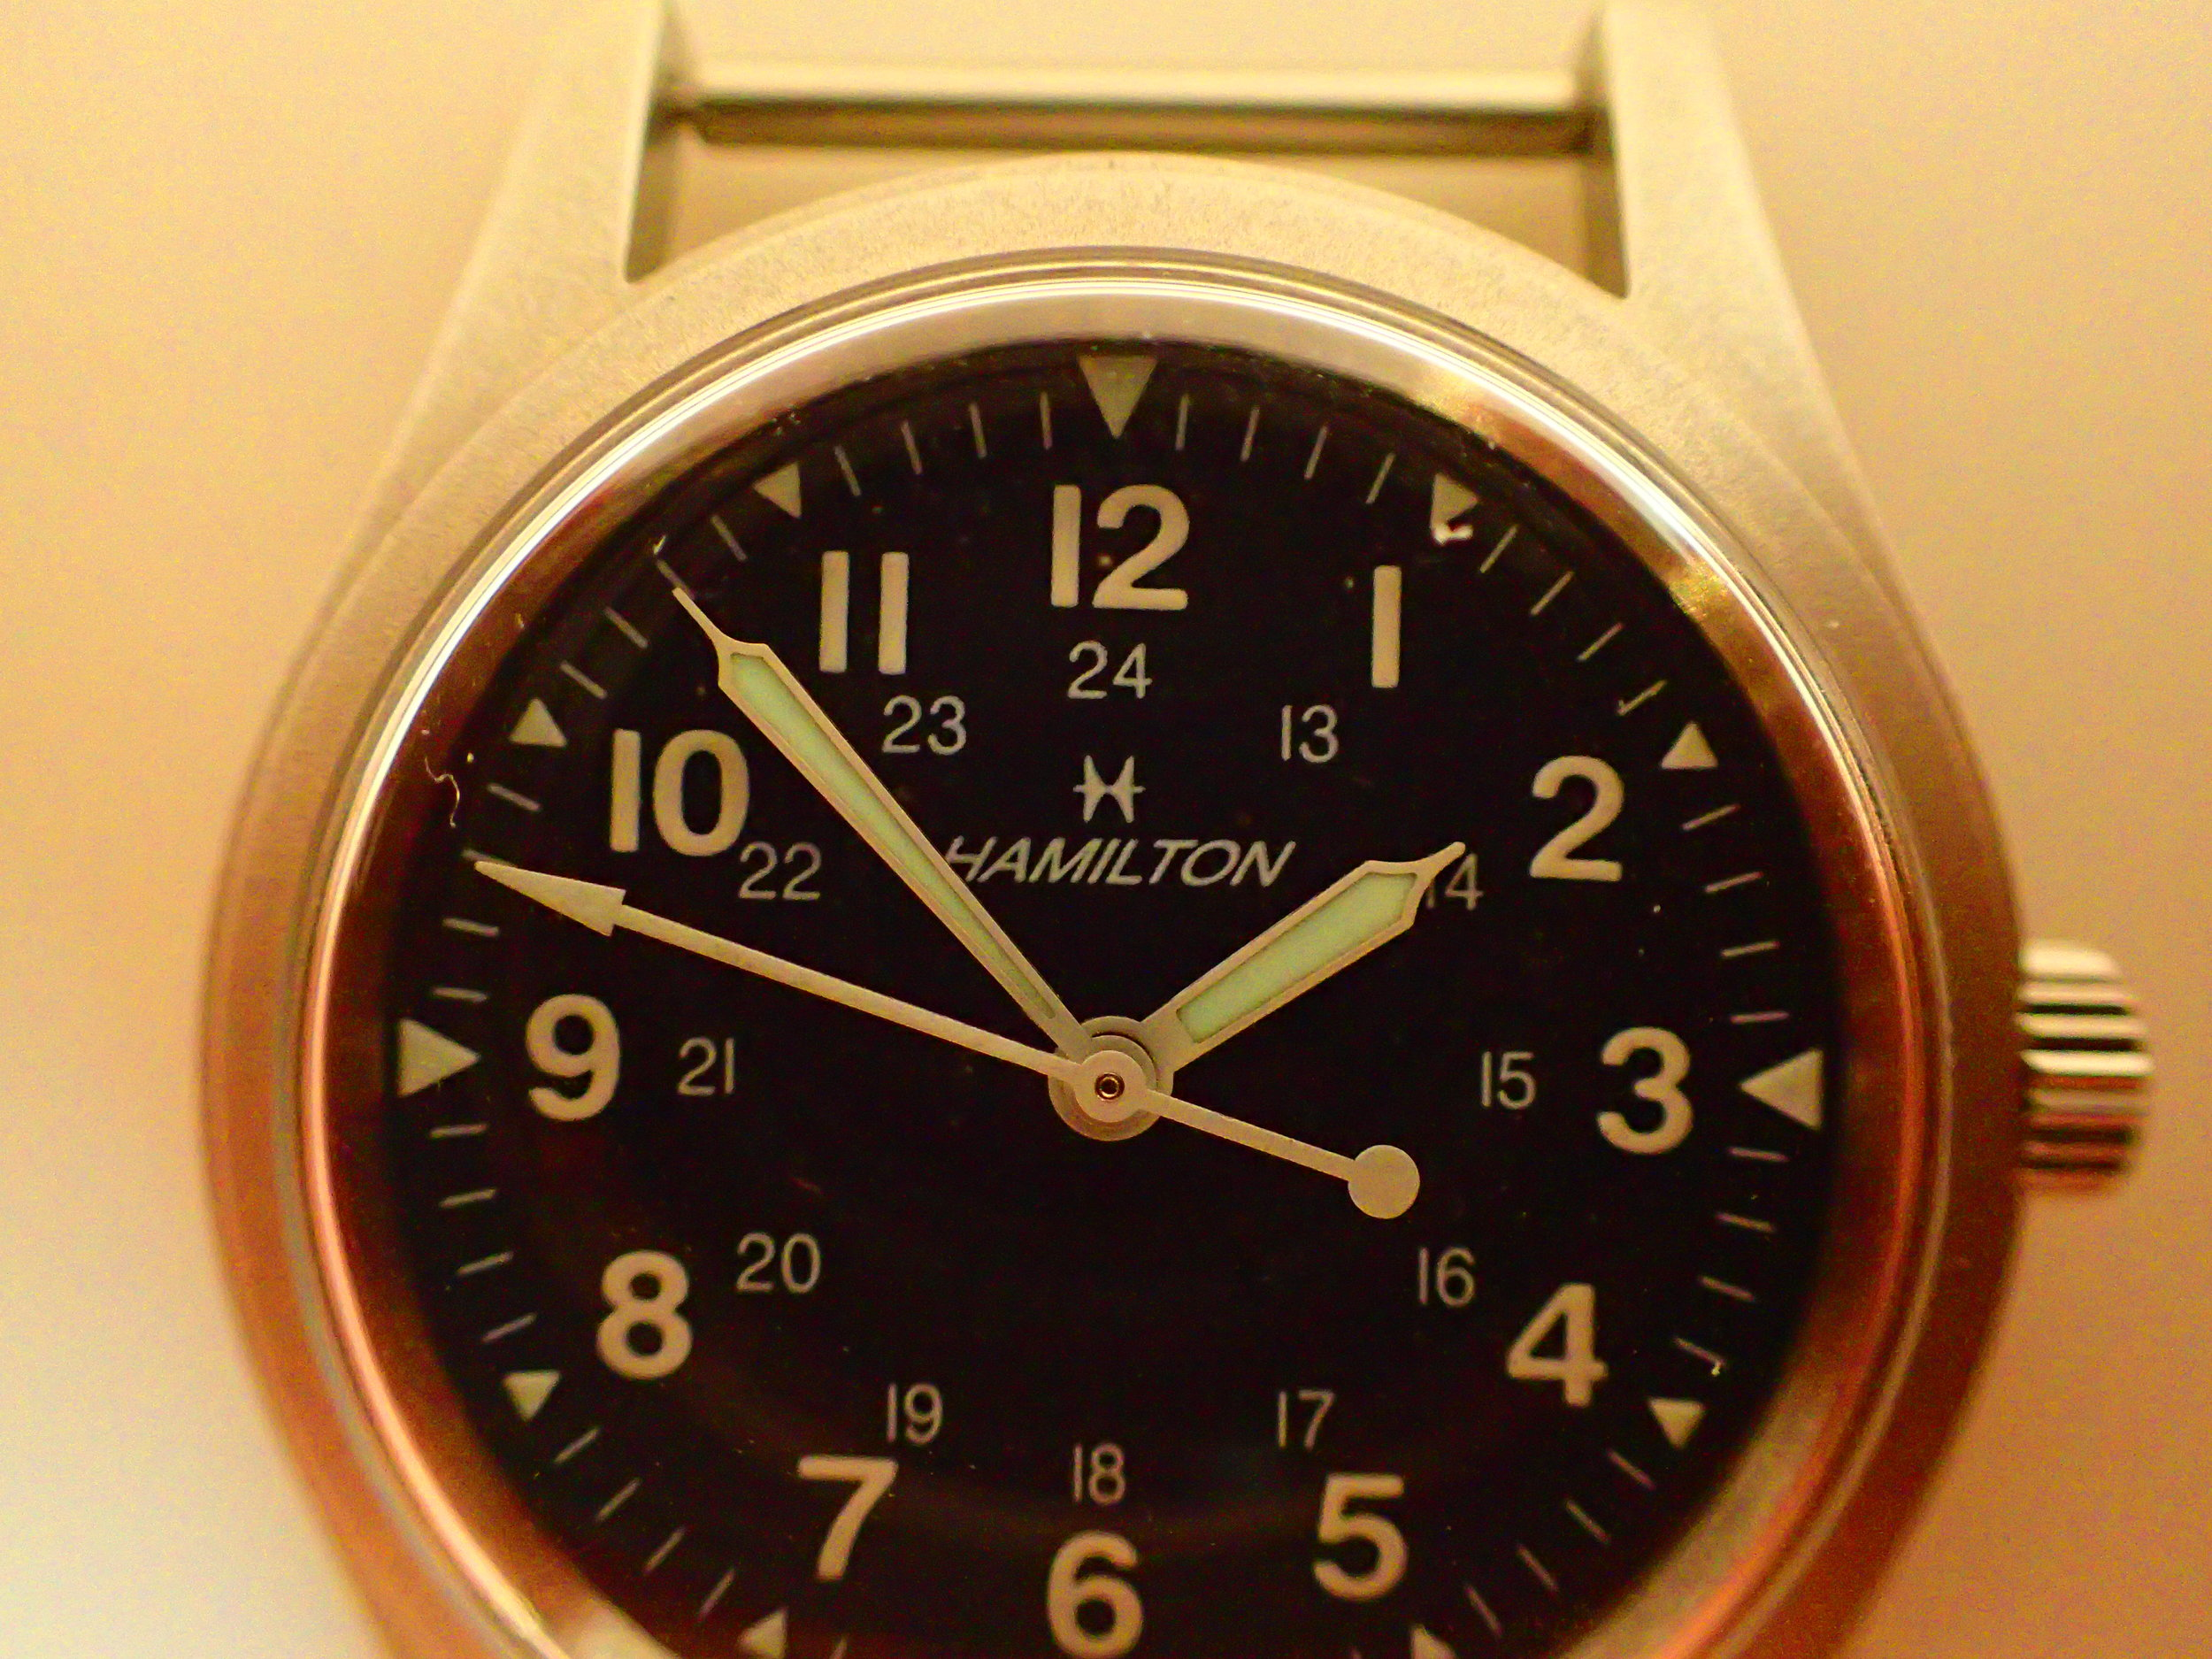 A very late 9415A. Note the unusual dial with retro Jet Age logo, high quality printing, and more modern luminescent material.